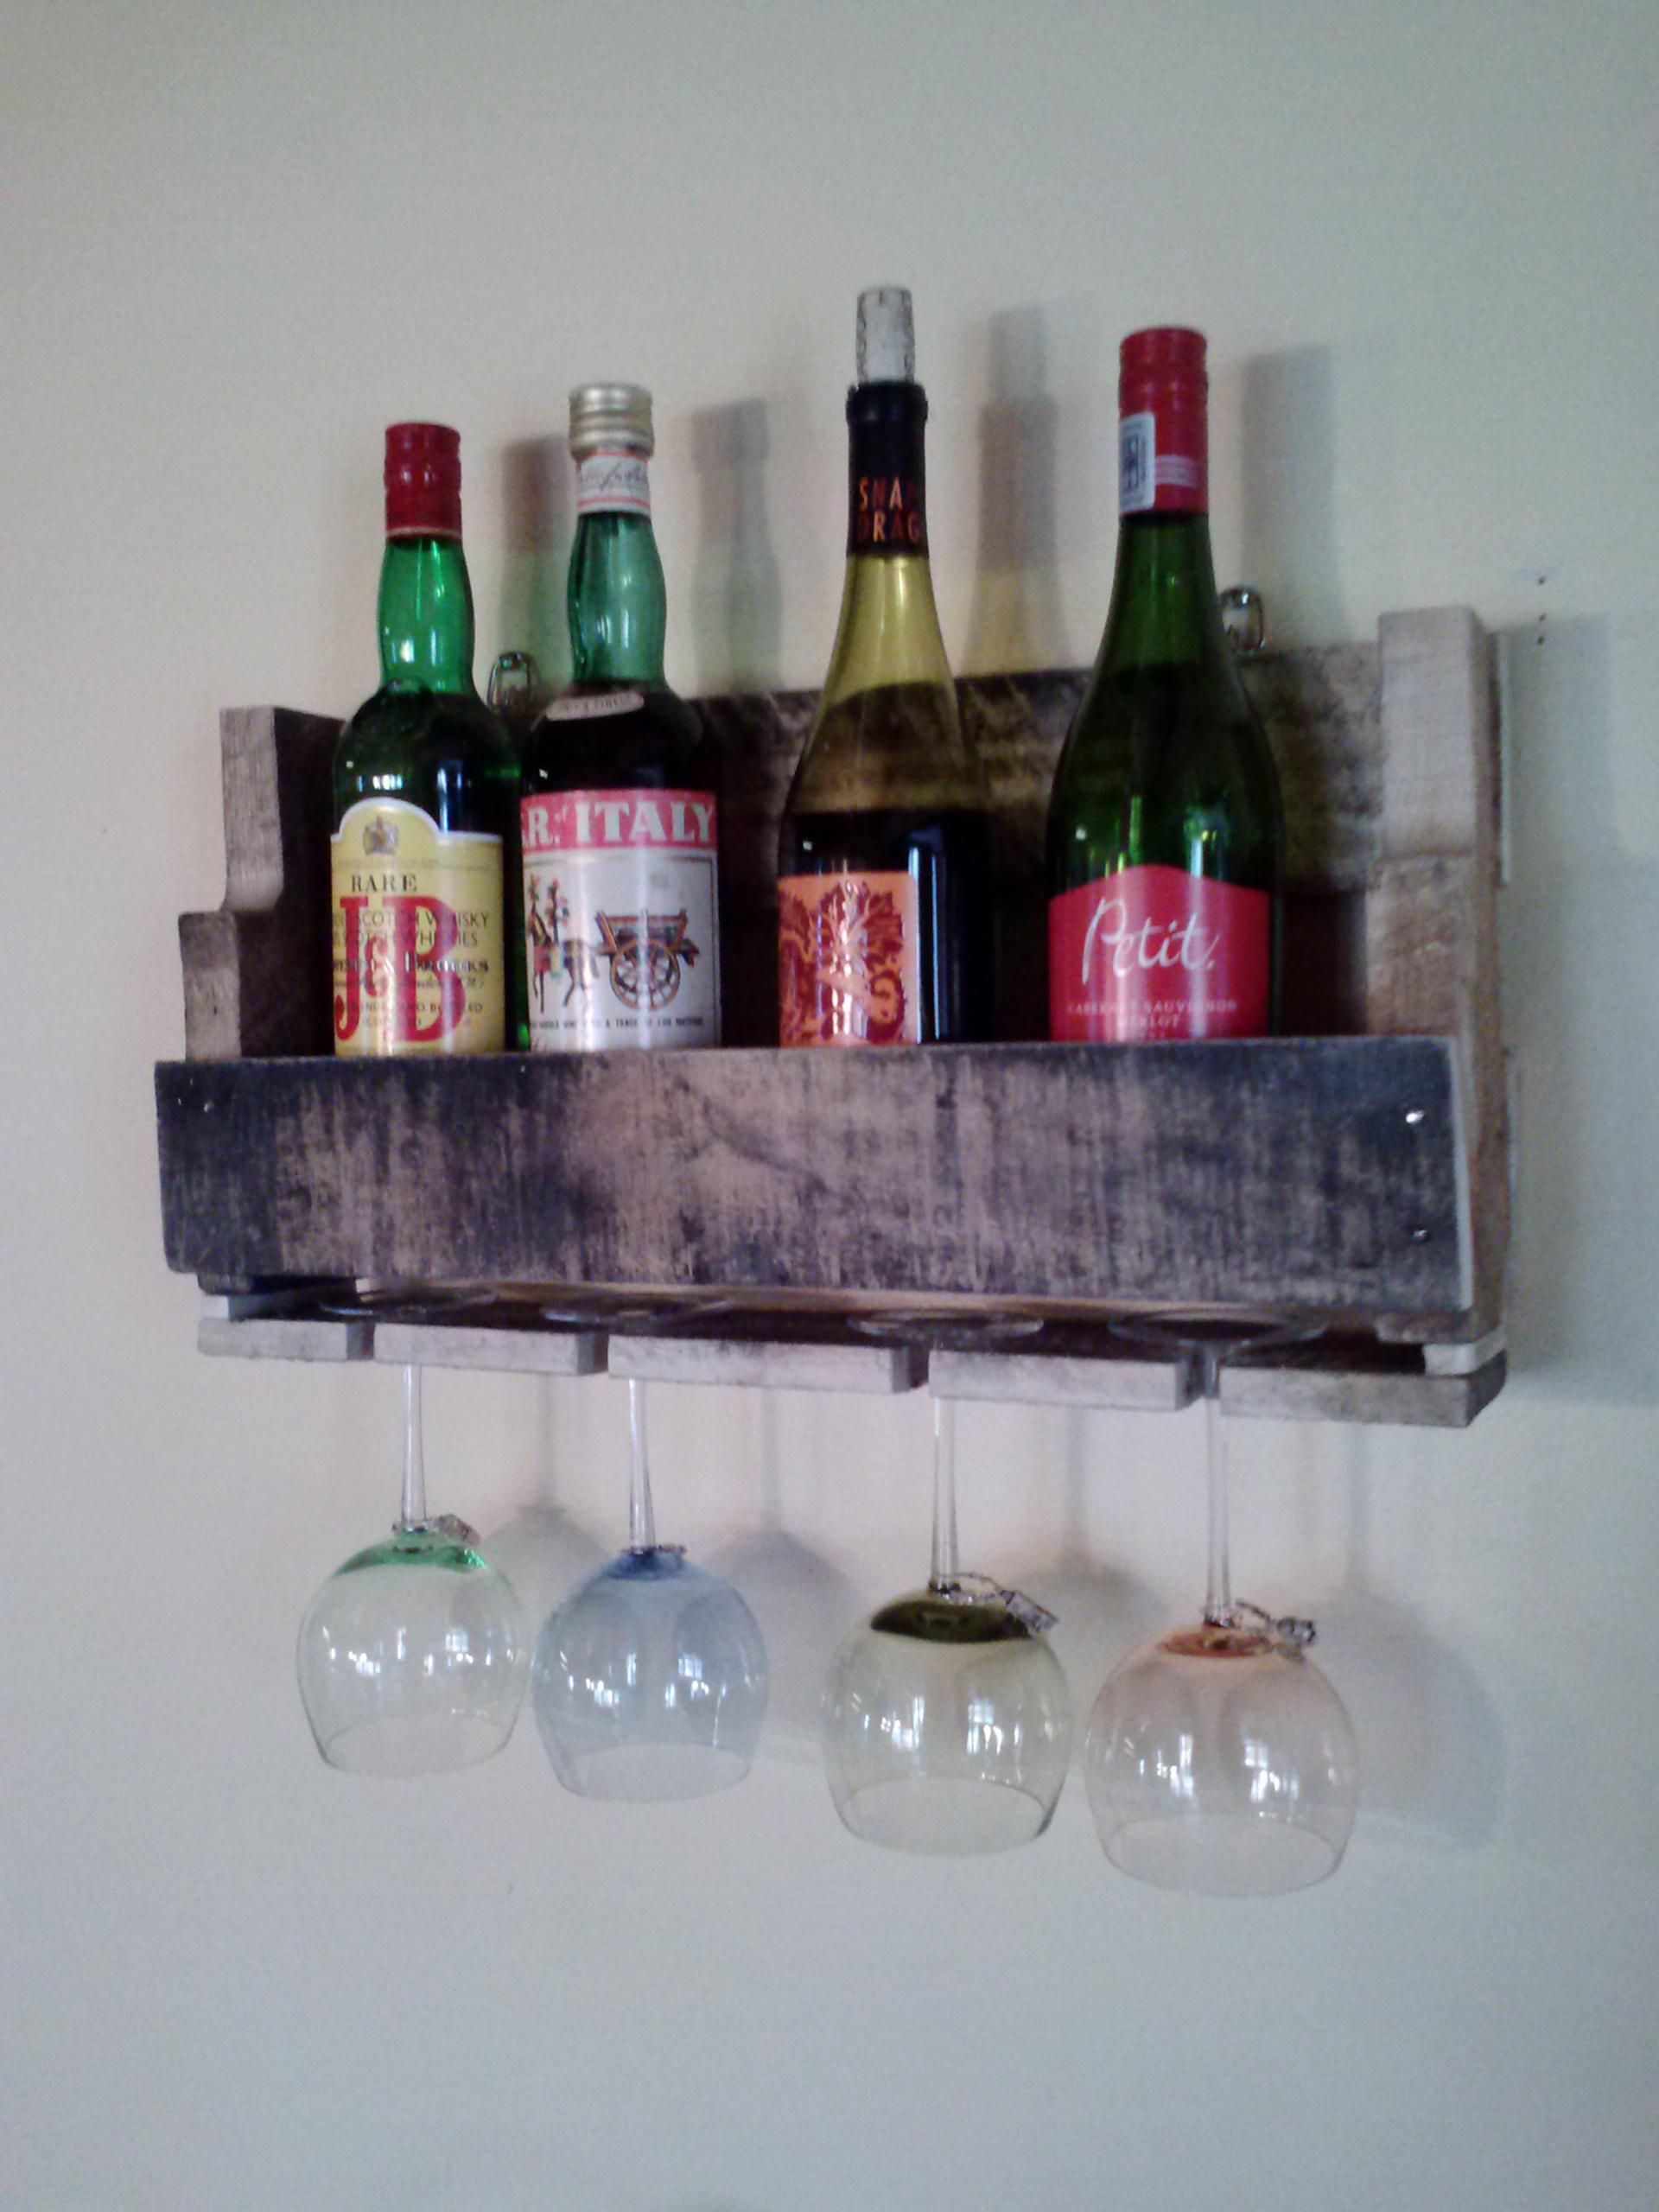 diy jk guam adams bisita of design plans hanging type rack glass wine image